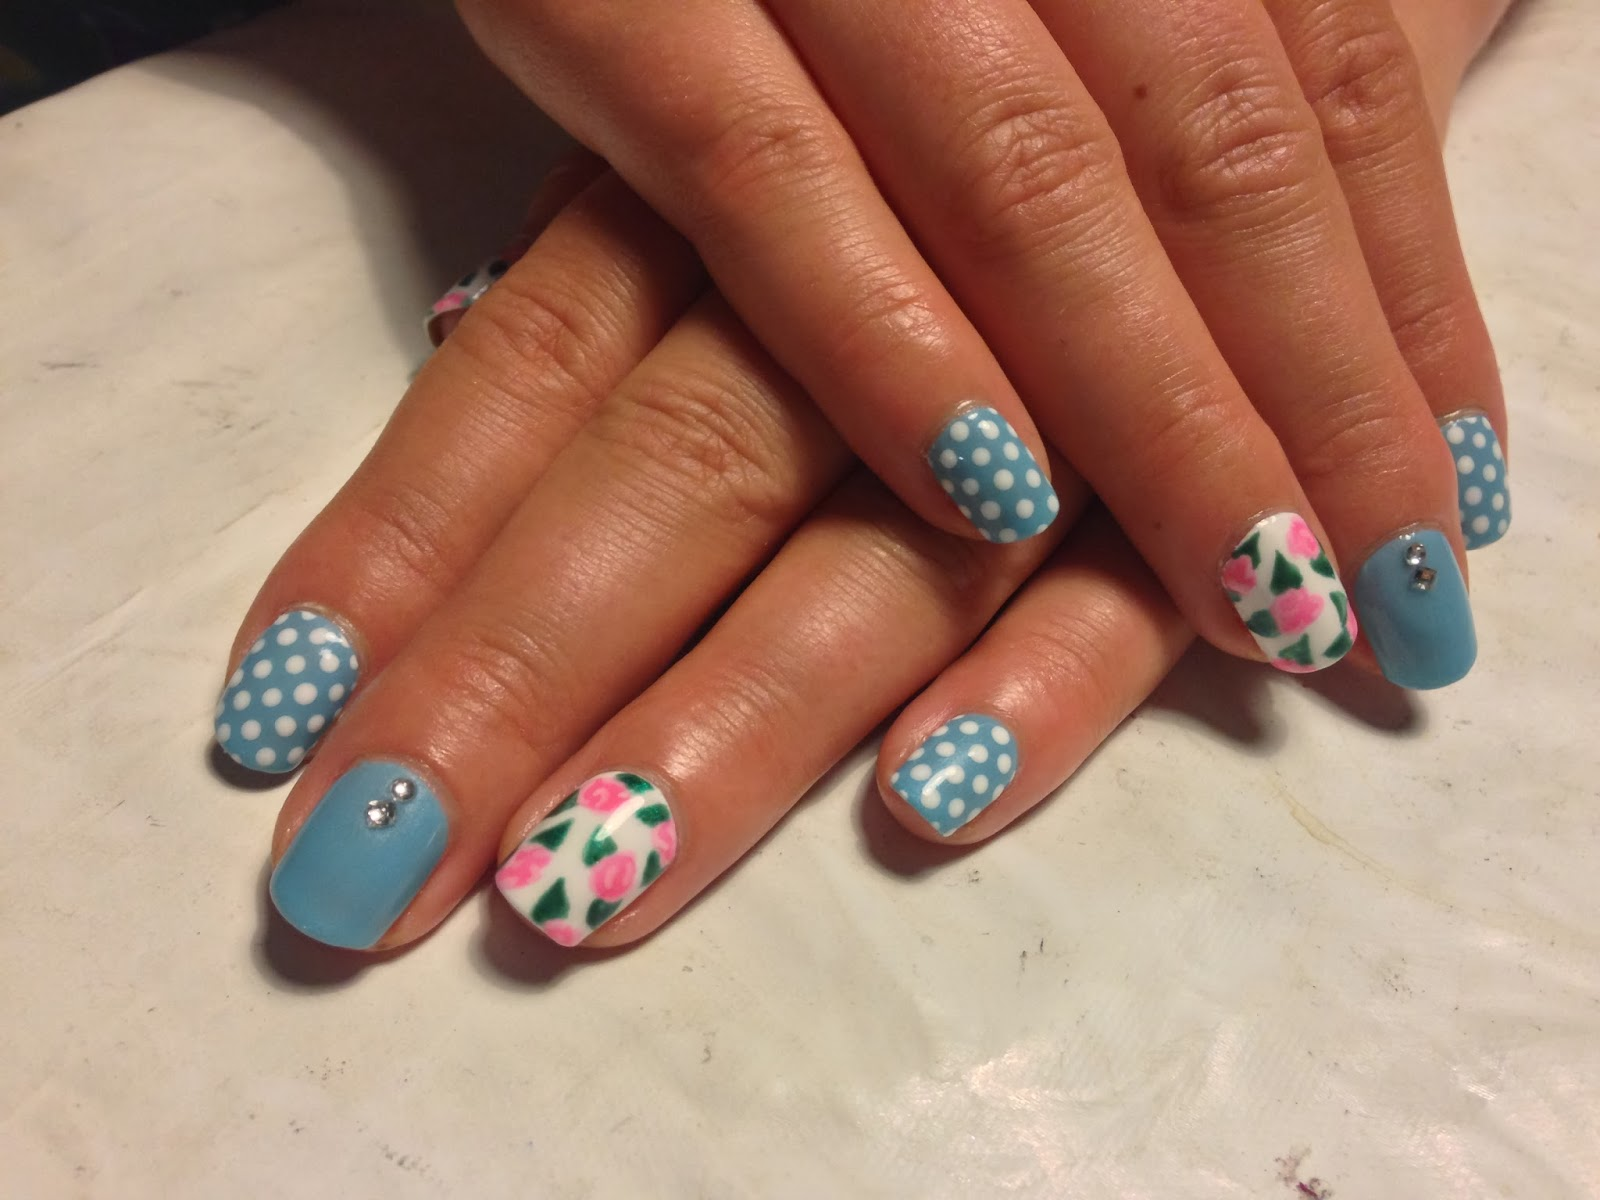 Brush up and Polish up!: CND Shellac Nail Art - Cath Kidston Blue